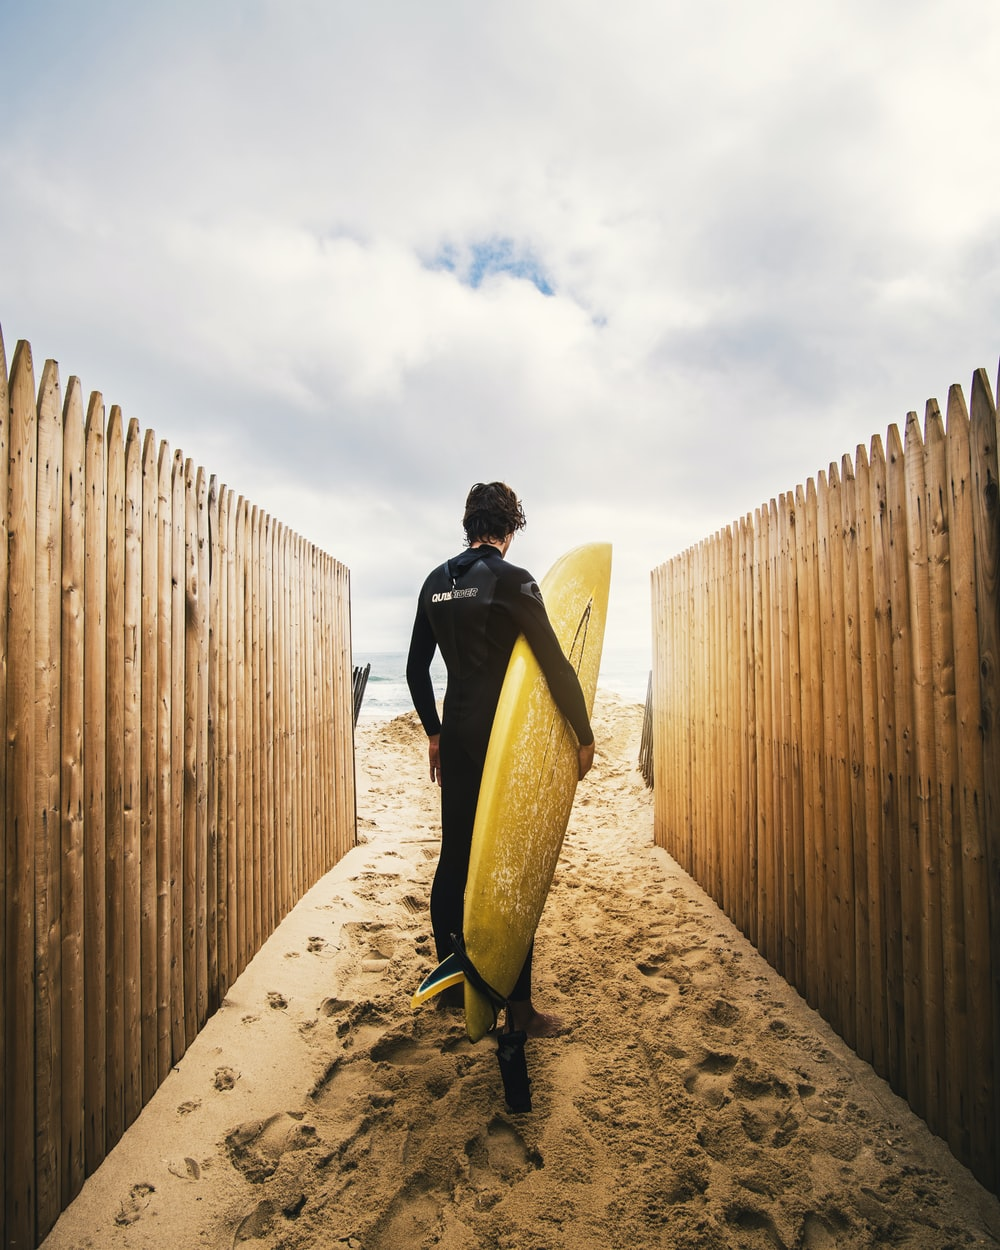 person standing between privacy fences while holding yellow surfboard during daytime